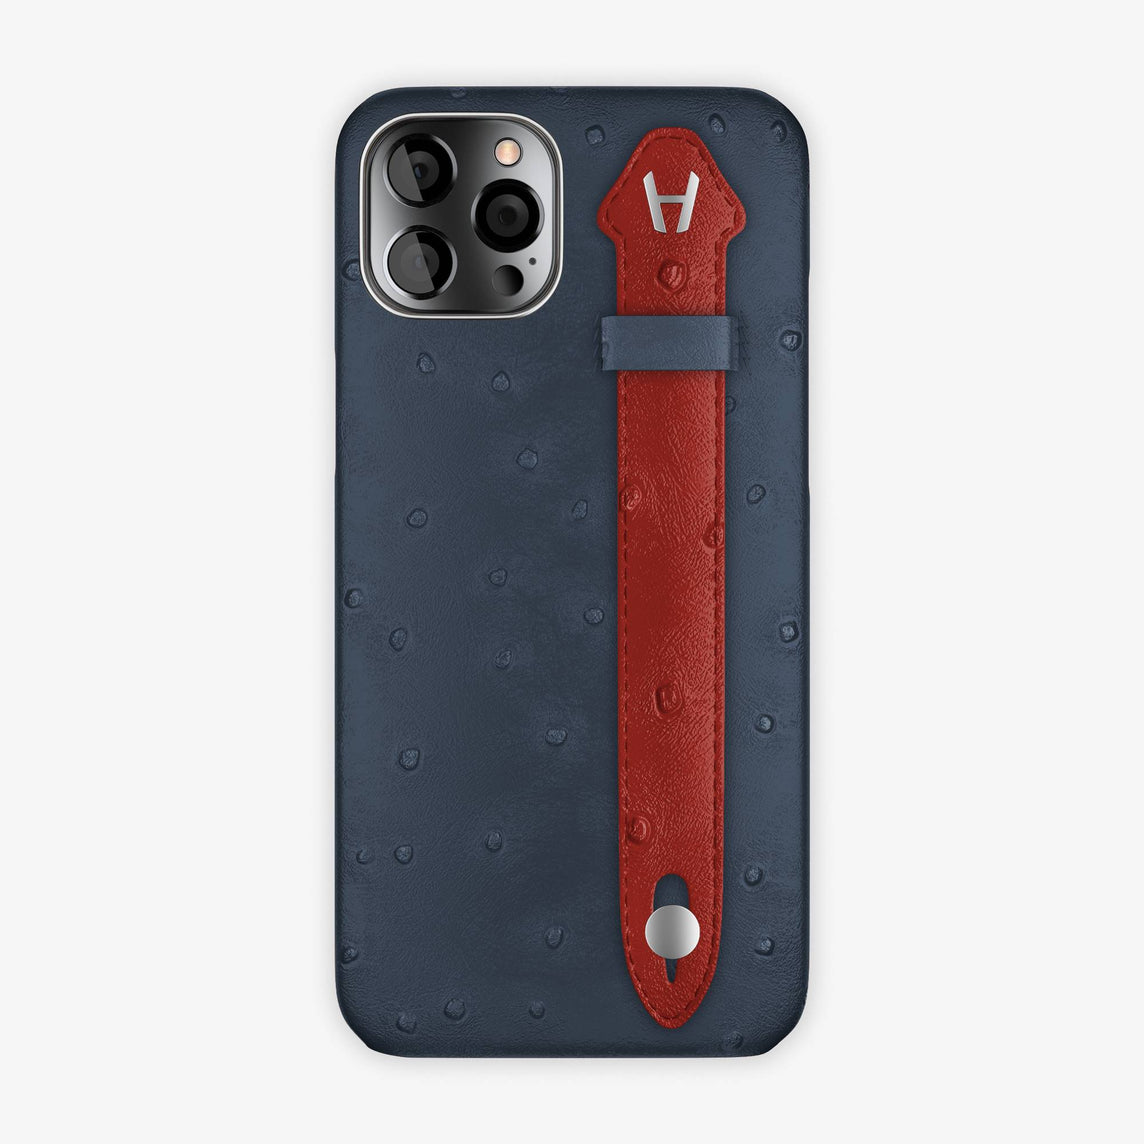 Ostrich Side Finger Case iPhone 12 Pro Max | Navy Blue/Red - Stainless Steel